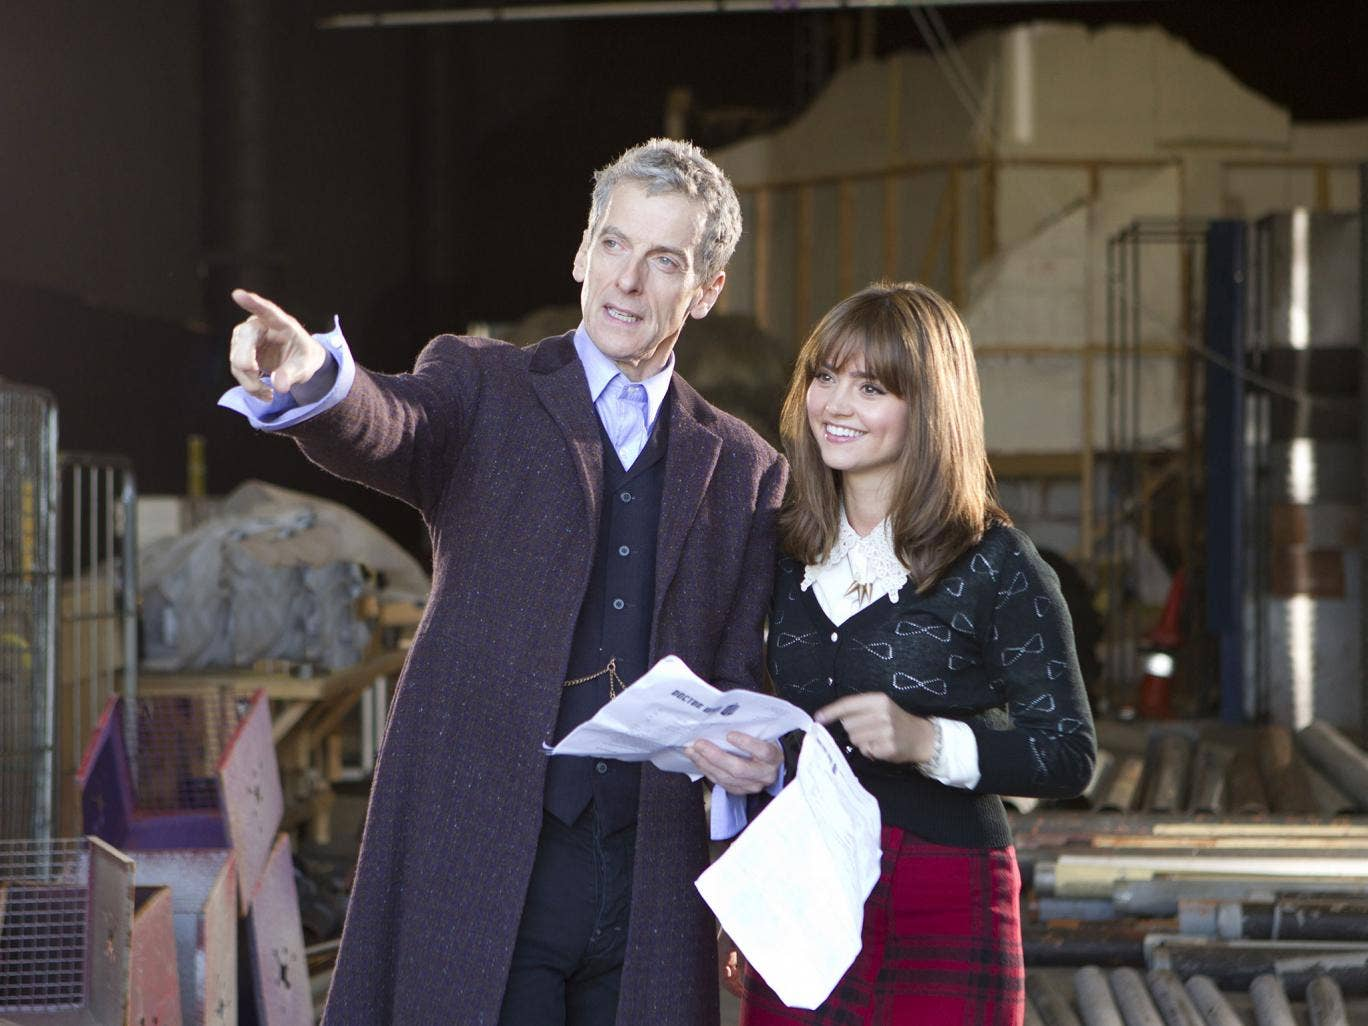 Peter Capaldi and Jenna Coleman as Doctor Who and Clara behind the scenes